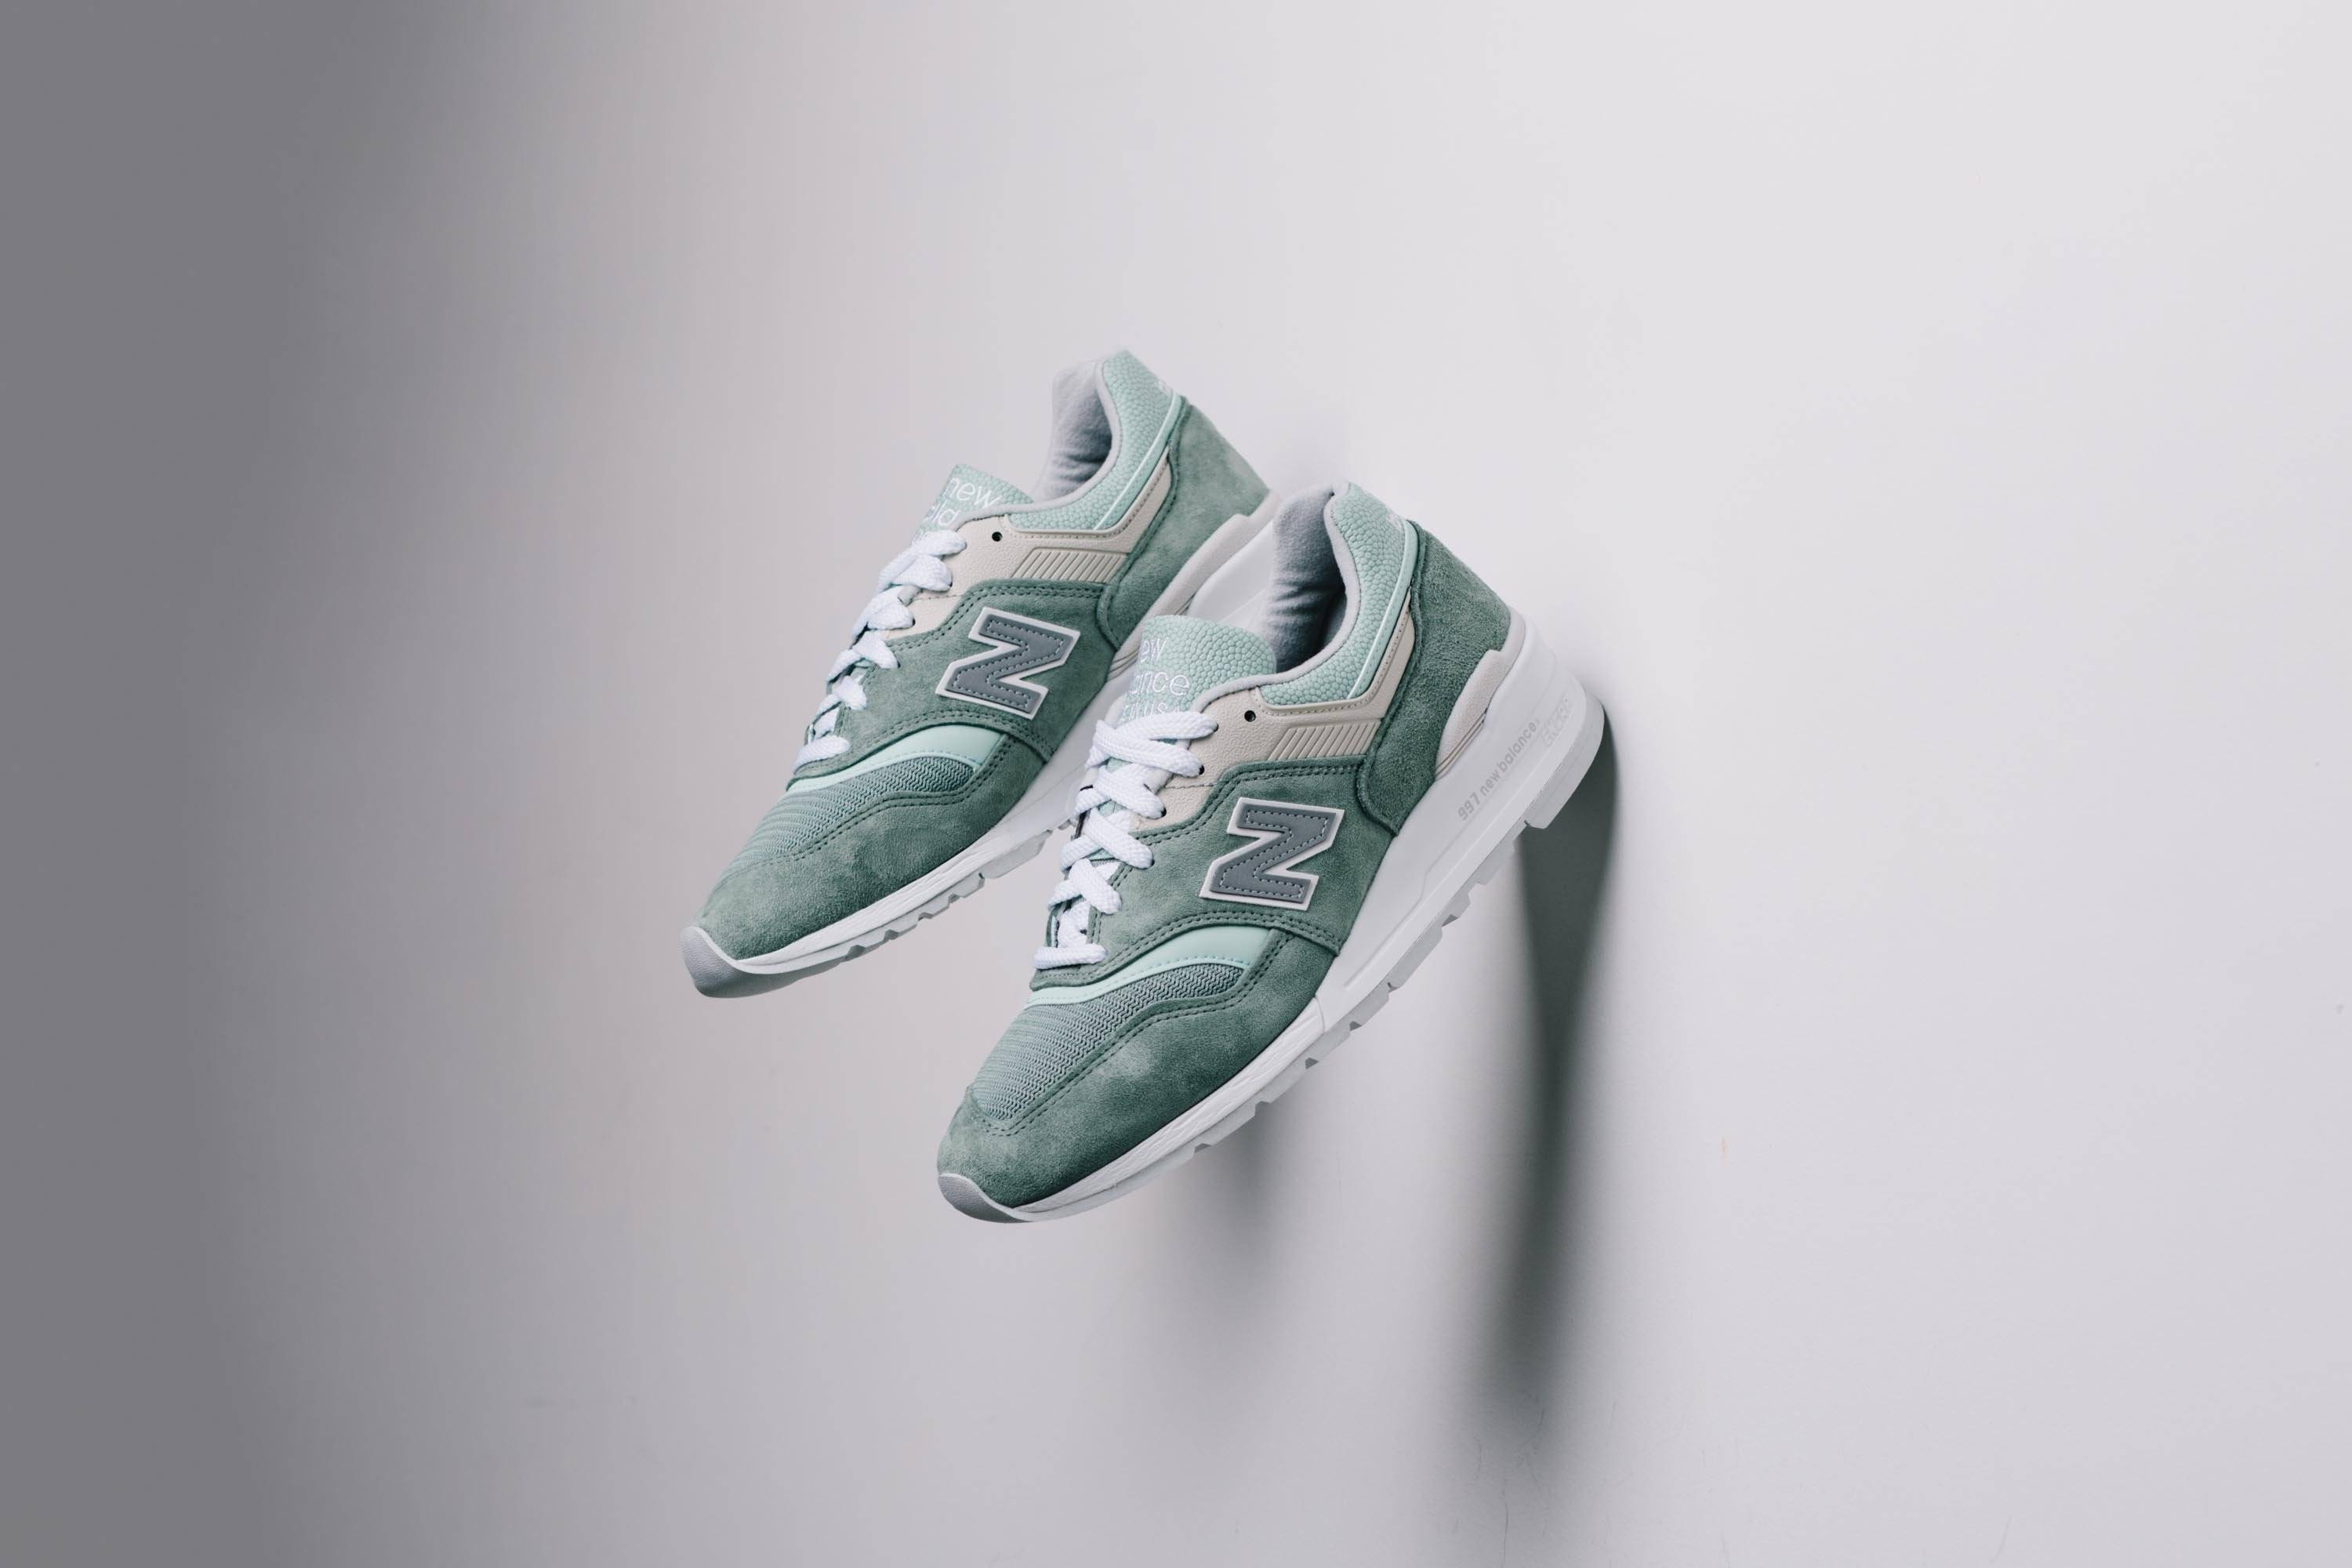 New Balance M997SOB - Mint/White 现已发售